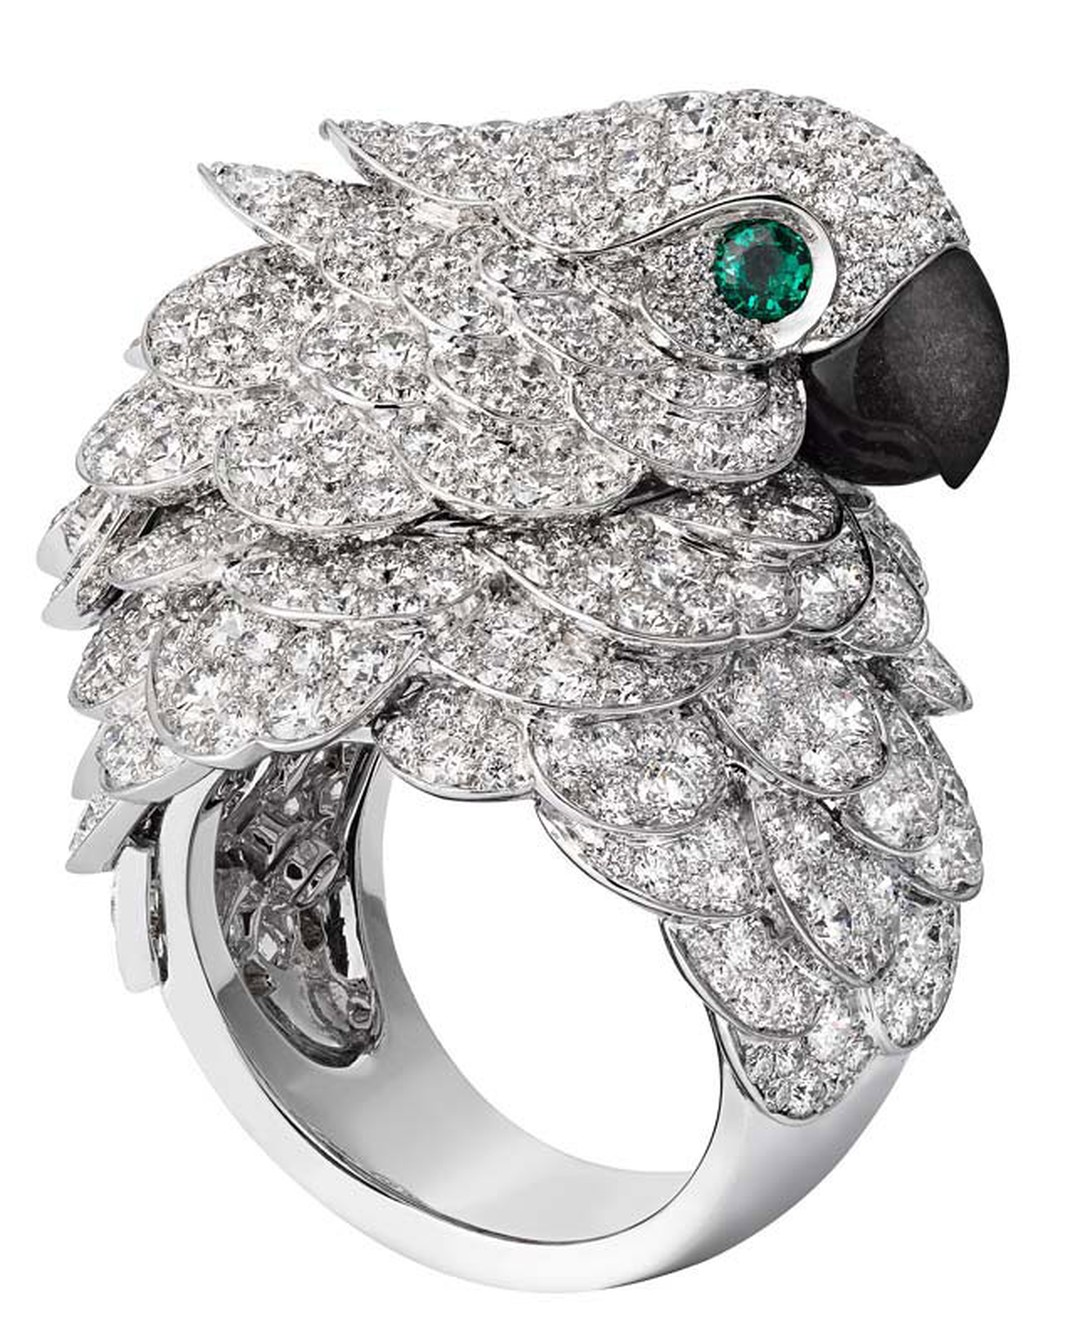 Cartier Fabuleux parrot watch and ring; watch and ring in rhodium-plated white gold set with brilliant-cut diamonds, beak in mother of pearl, eyes set with emeralds.